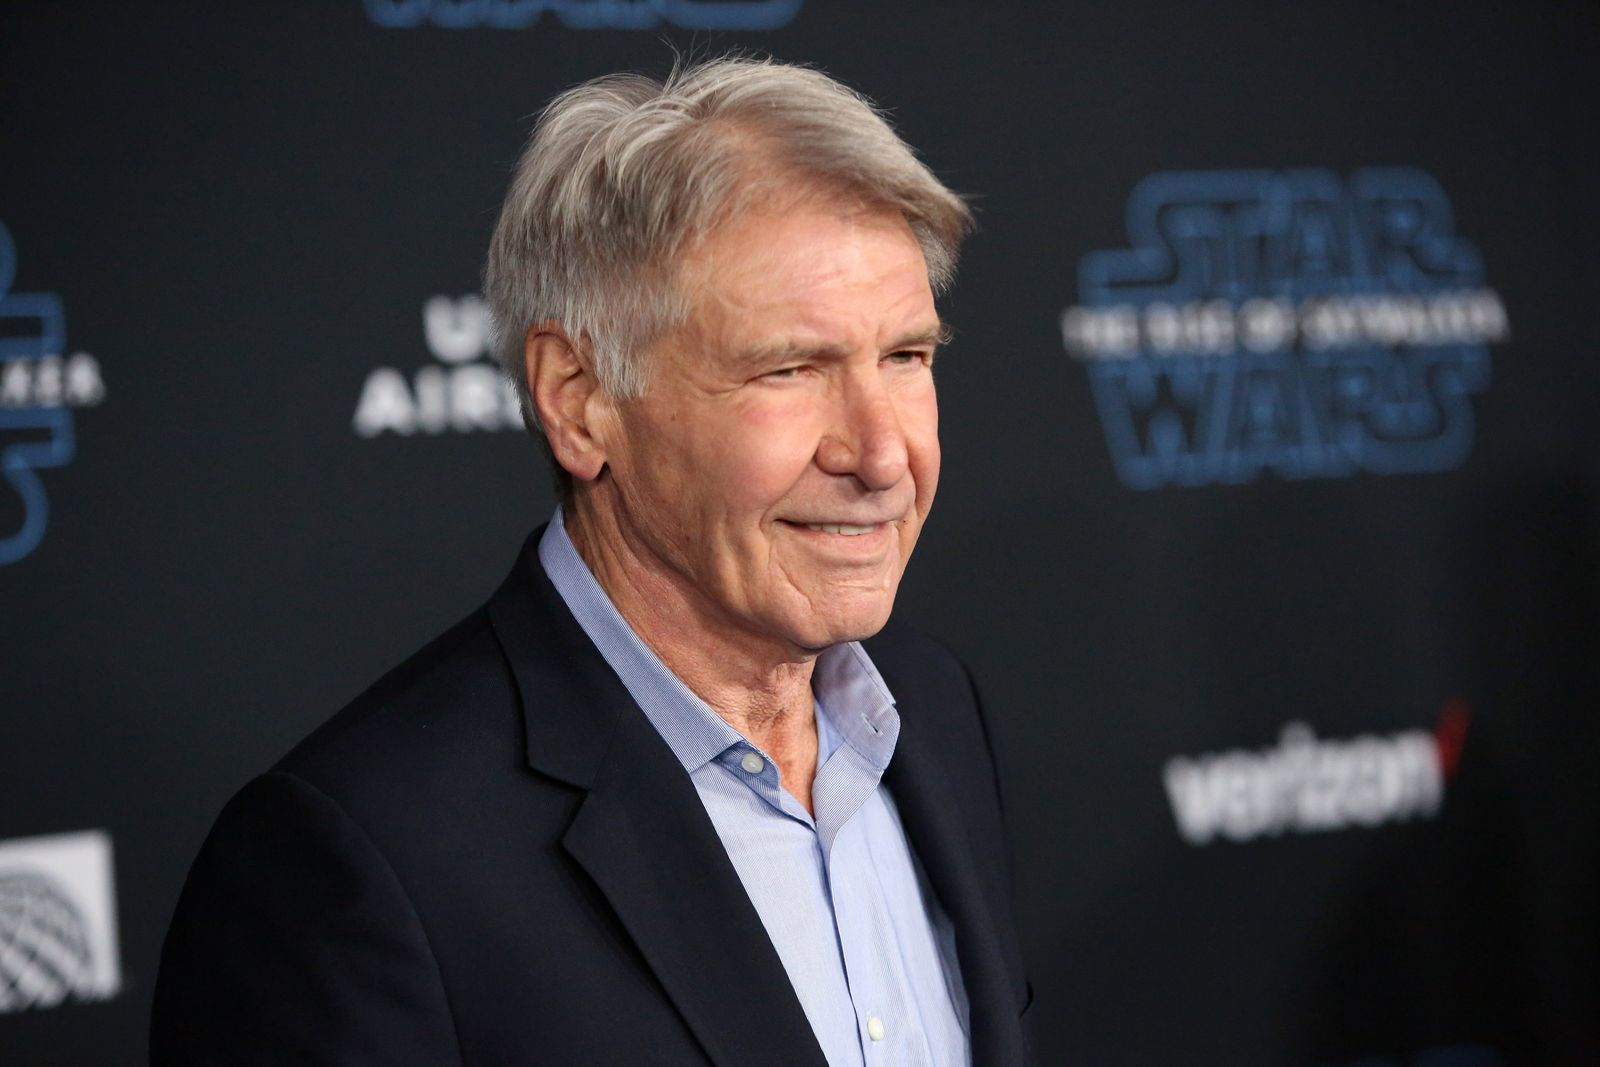 """Harrison Ford at the world premiere of """"Star Wars: The Rise of Skywalker"""" on December 16, 2019, in Hollywood, California   Photo: Getty Images"""